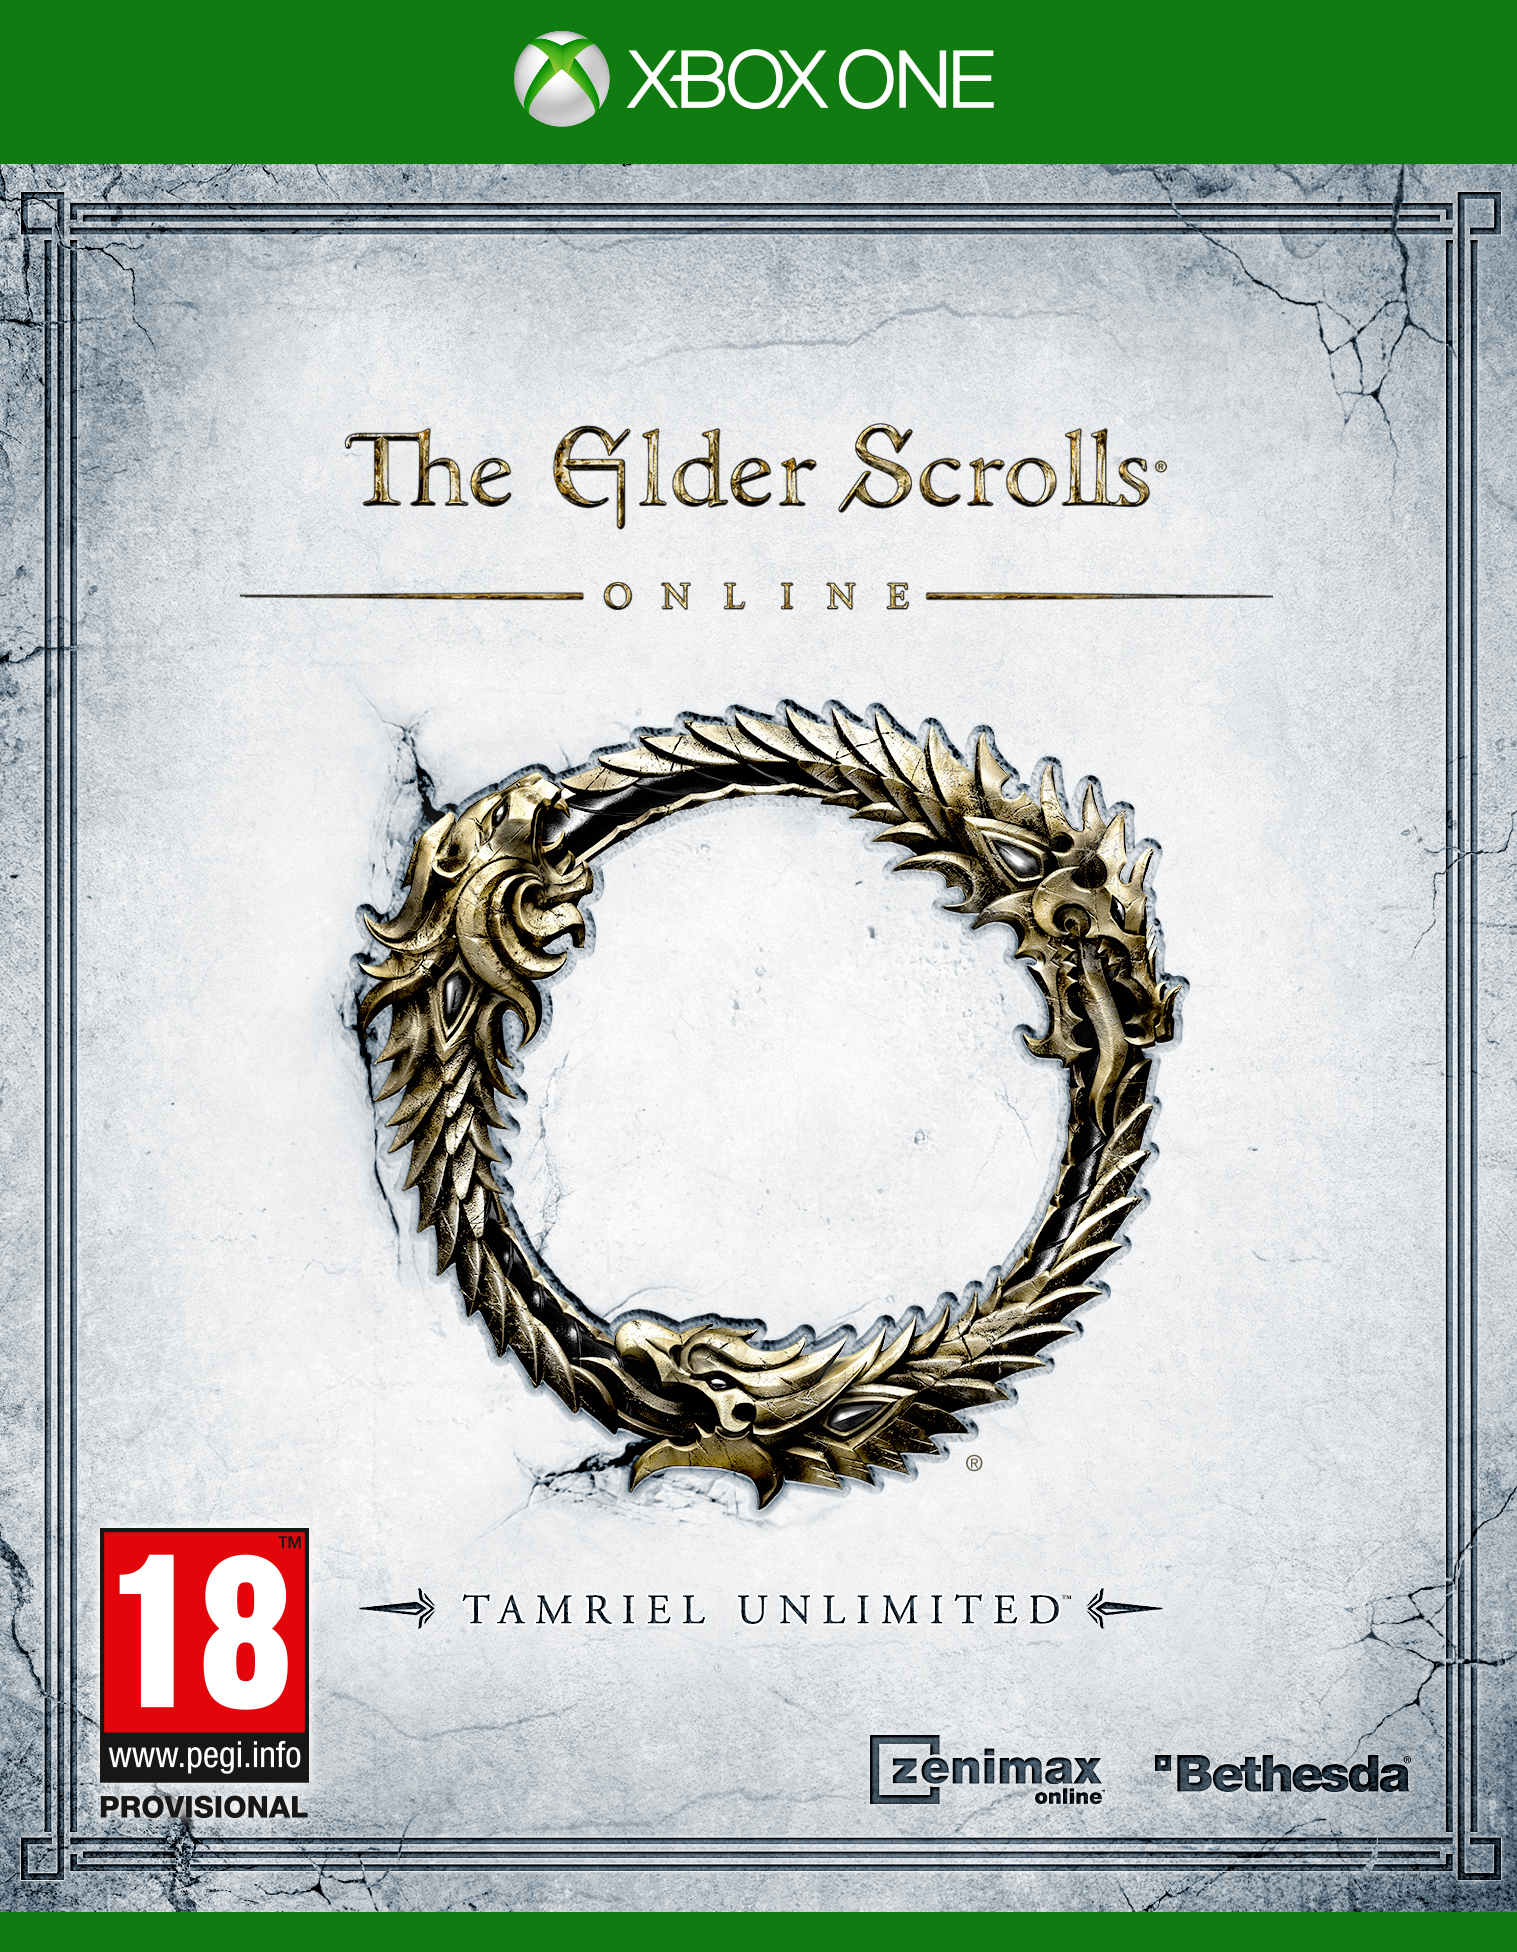 Box art - The Elder Scrolls Online: Tamriel Unlimited